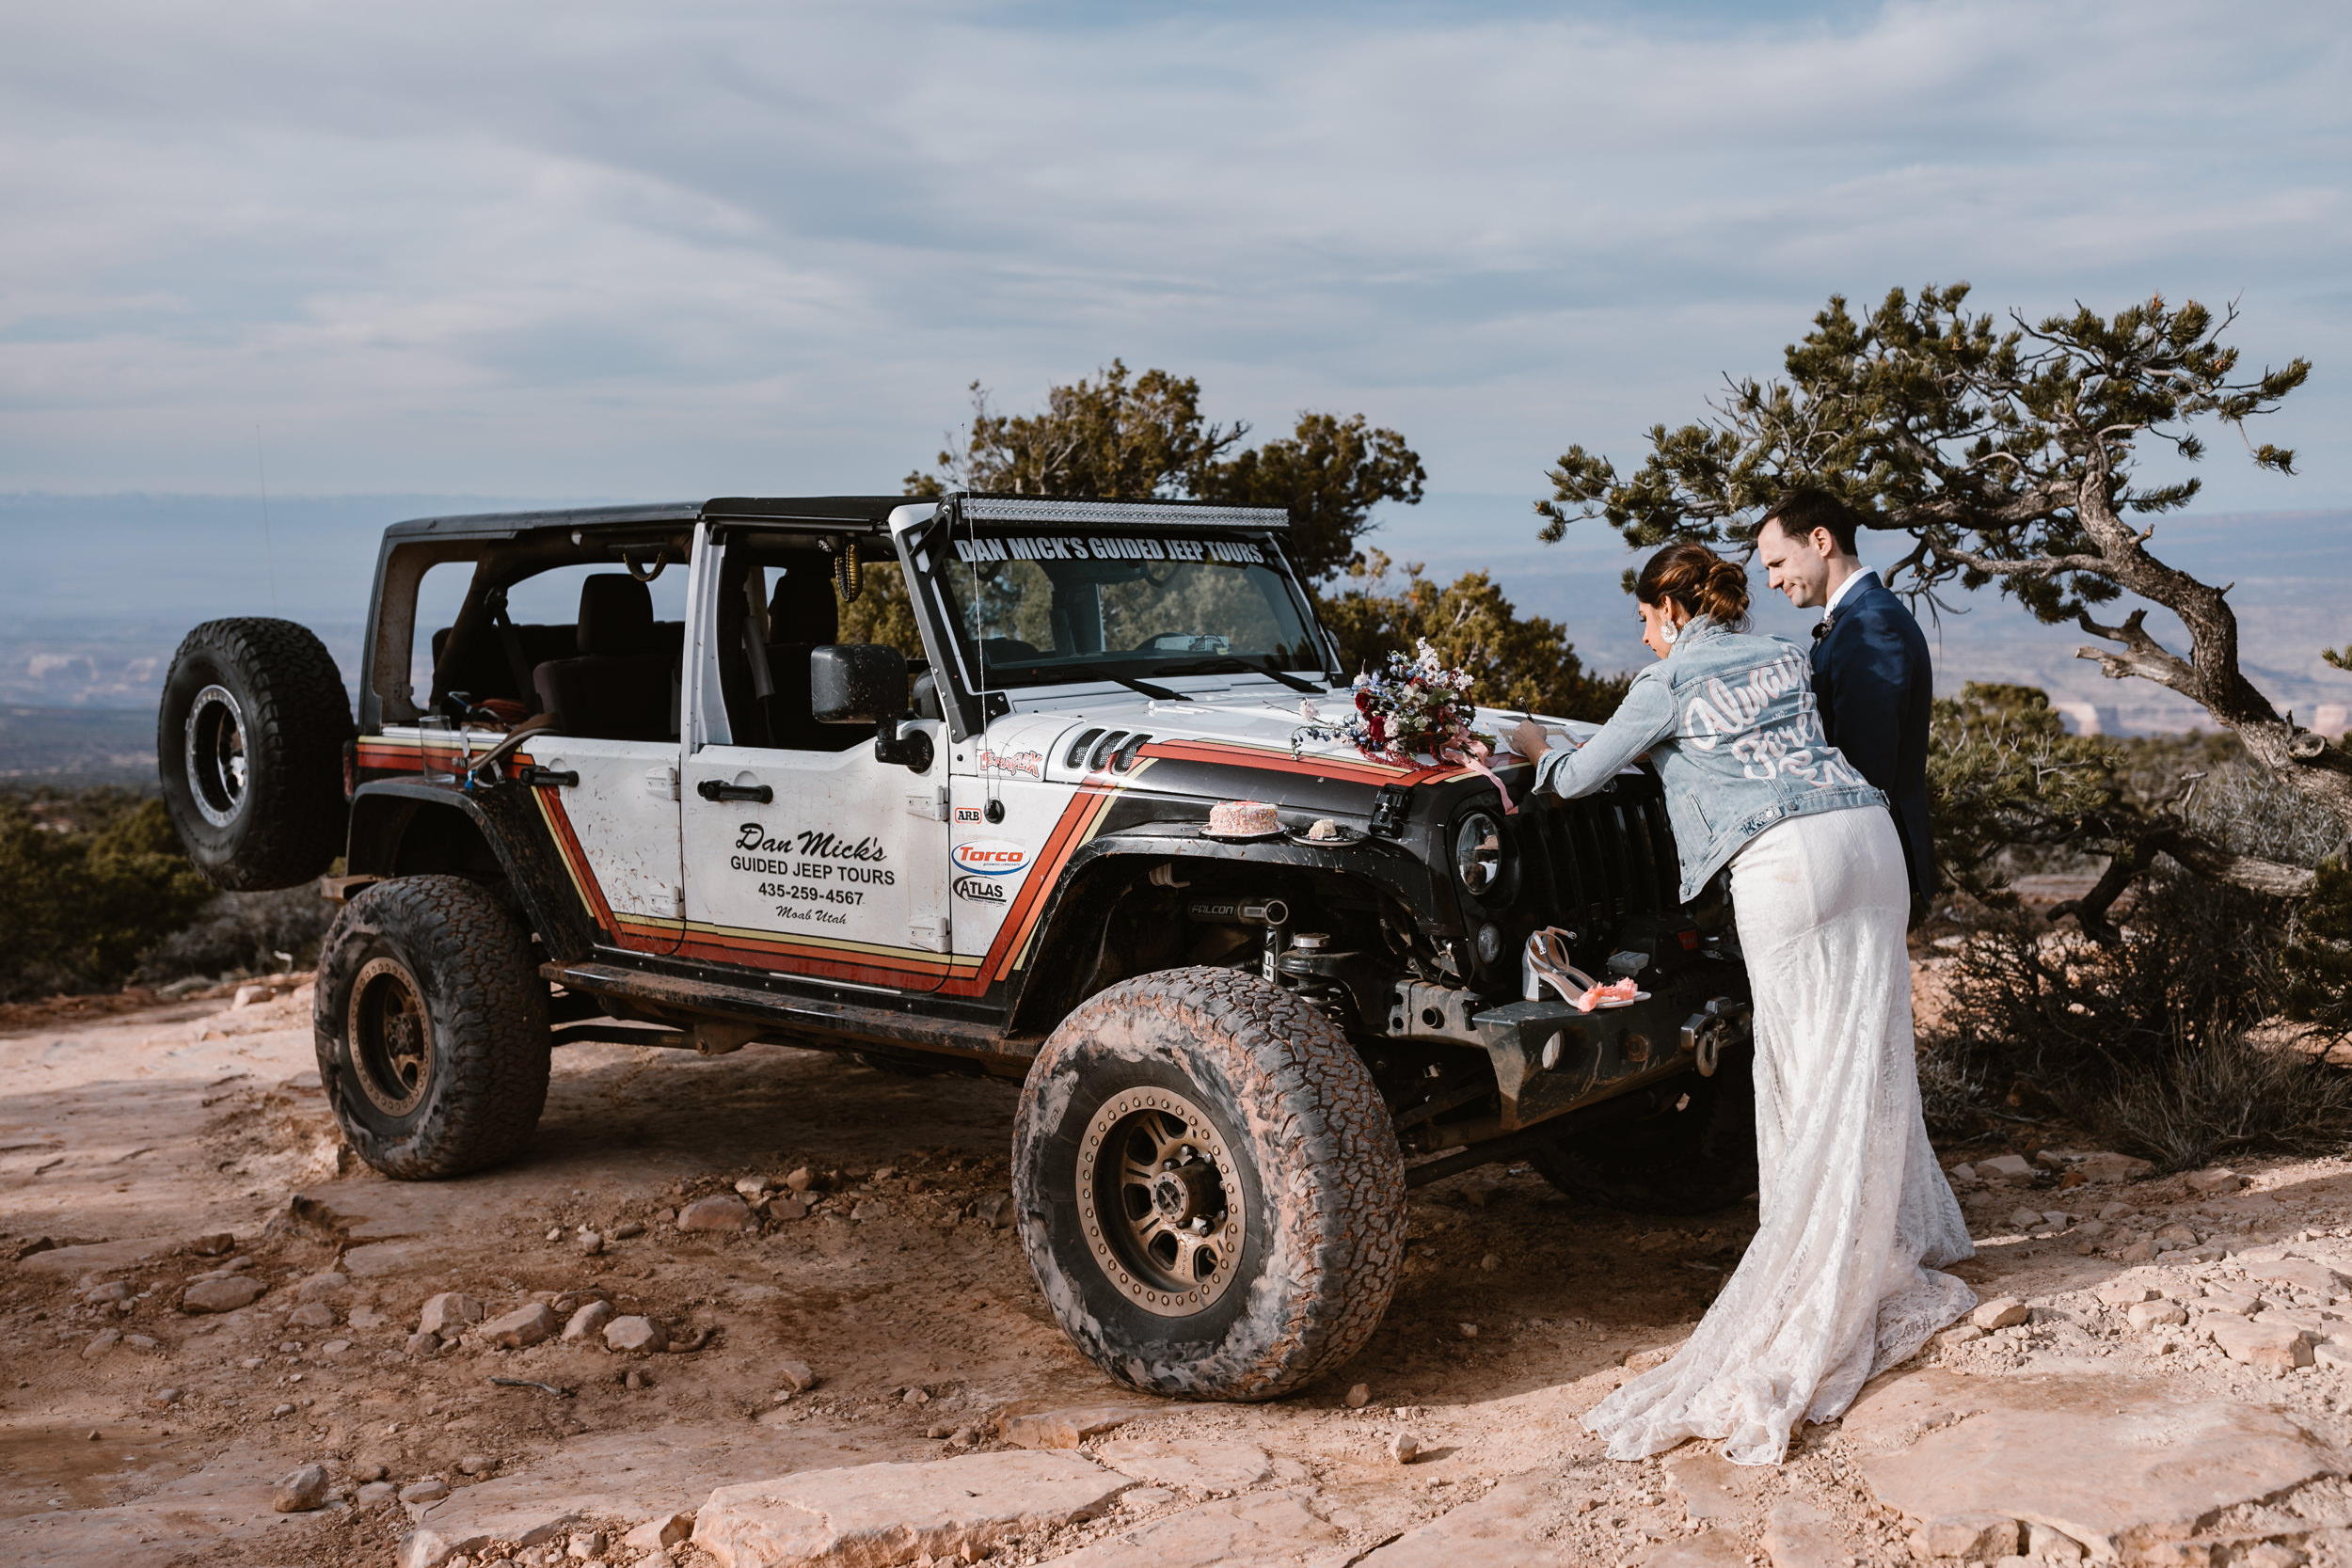 The Hearnes Adventure Wedding in Moab Utah Dan Mick's Jeep Tours